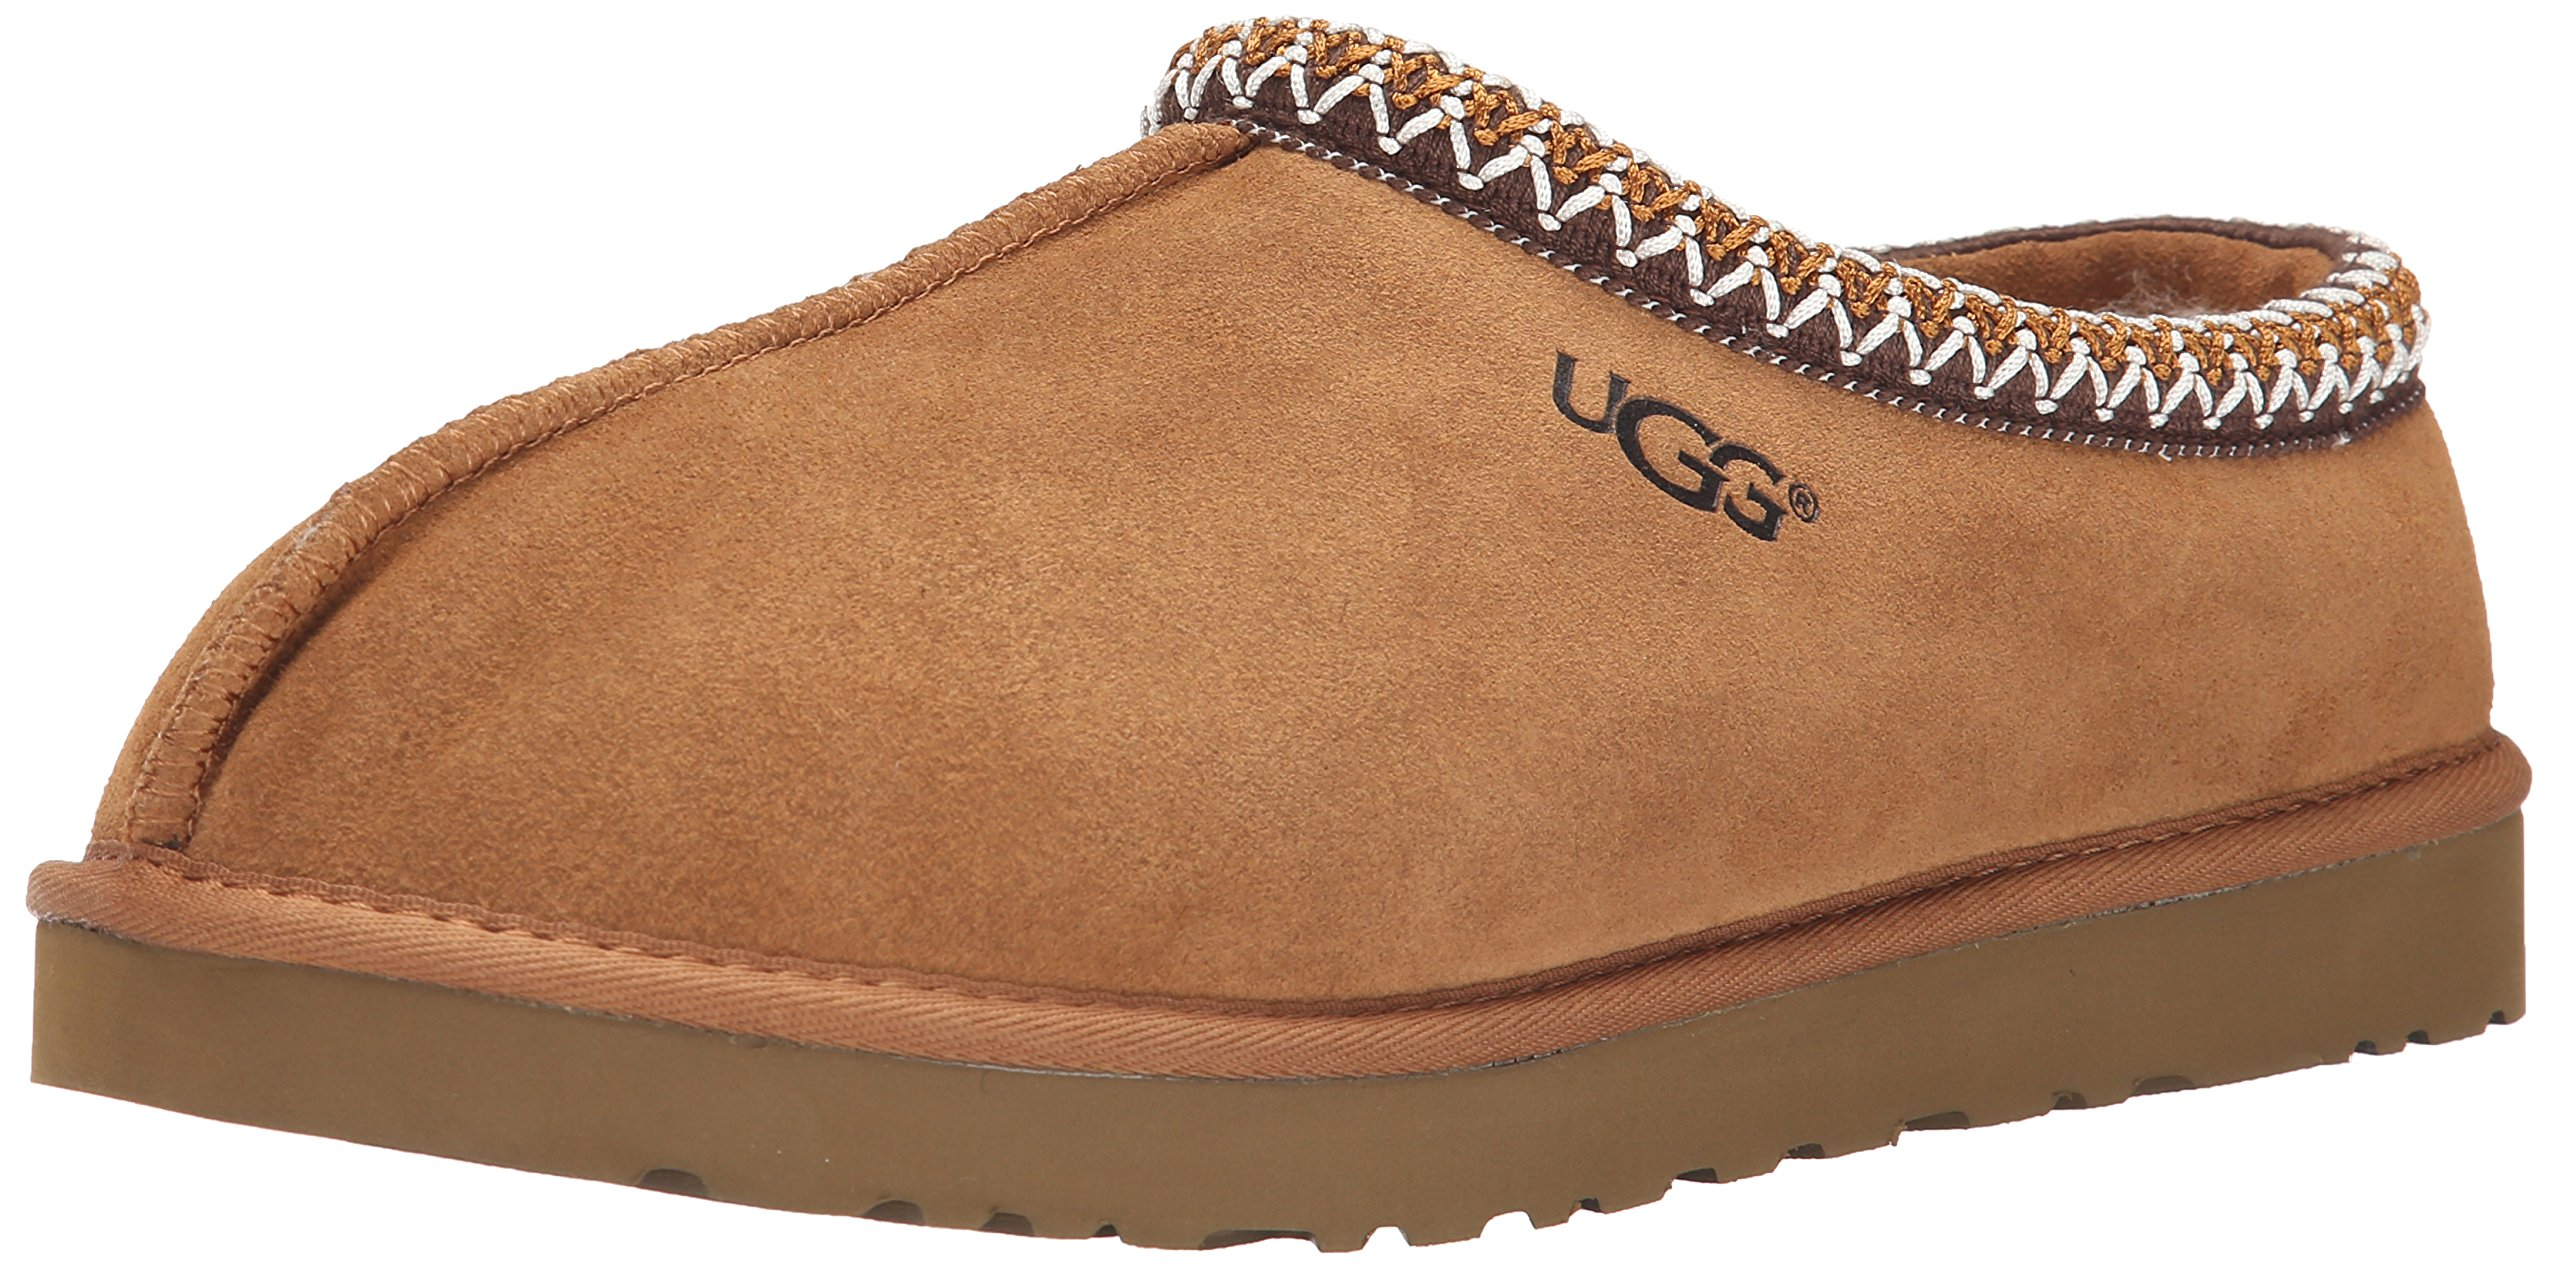 UGG Australia Men's Tasman Chestnut Suede Slippers - 12 D(M) US by UGG